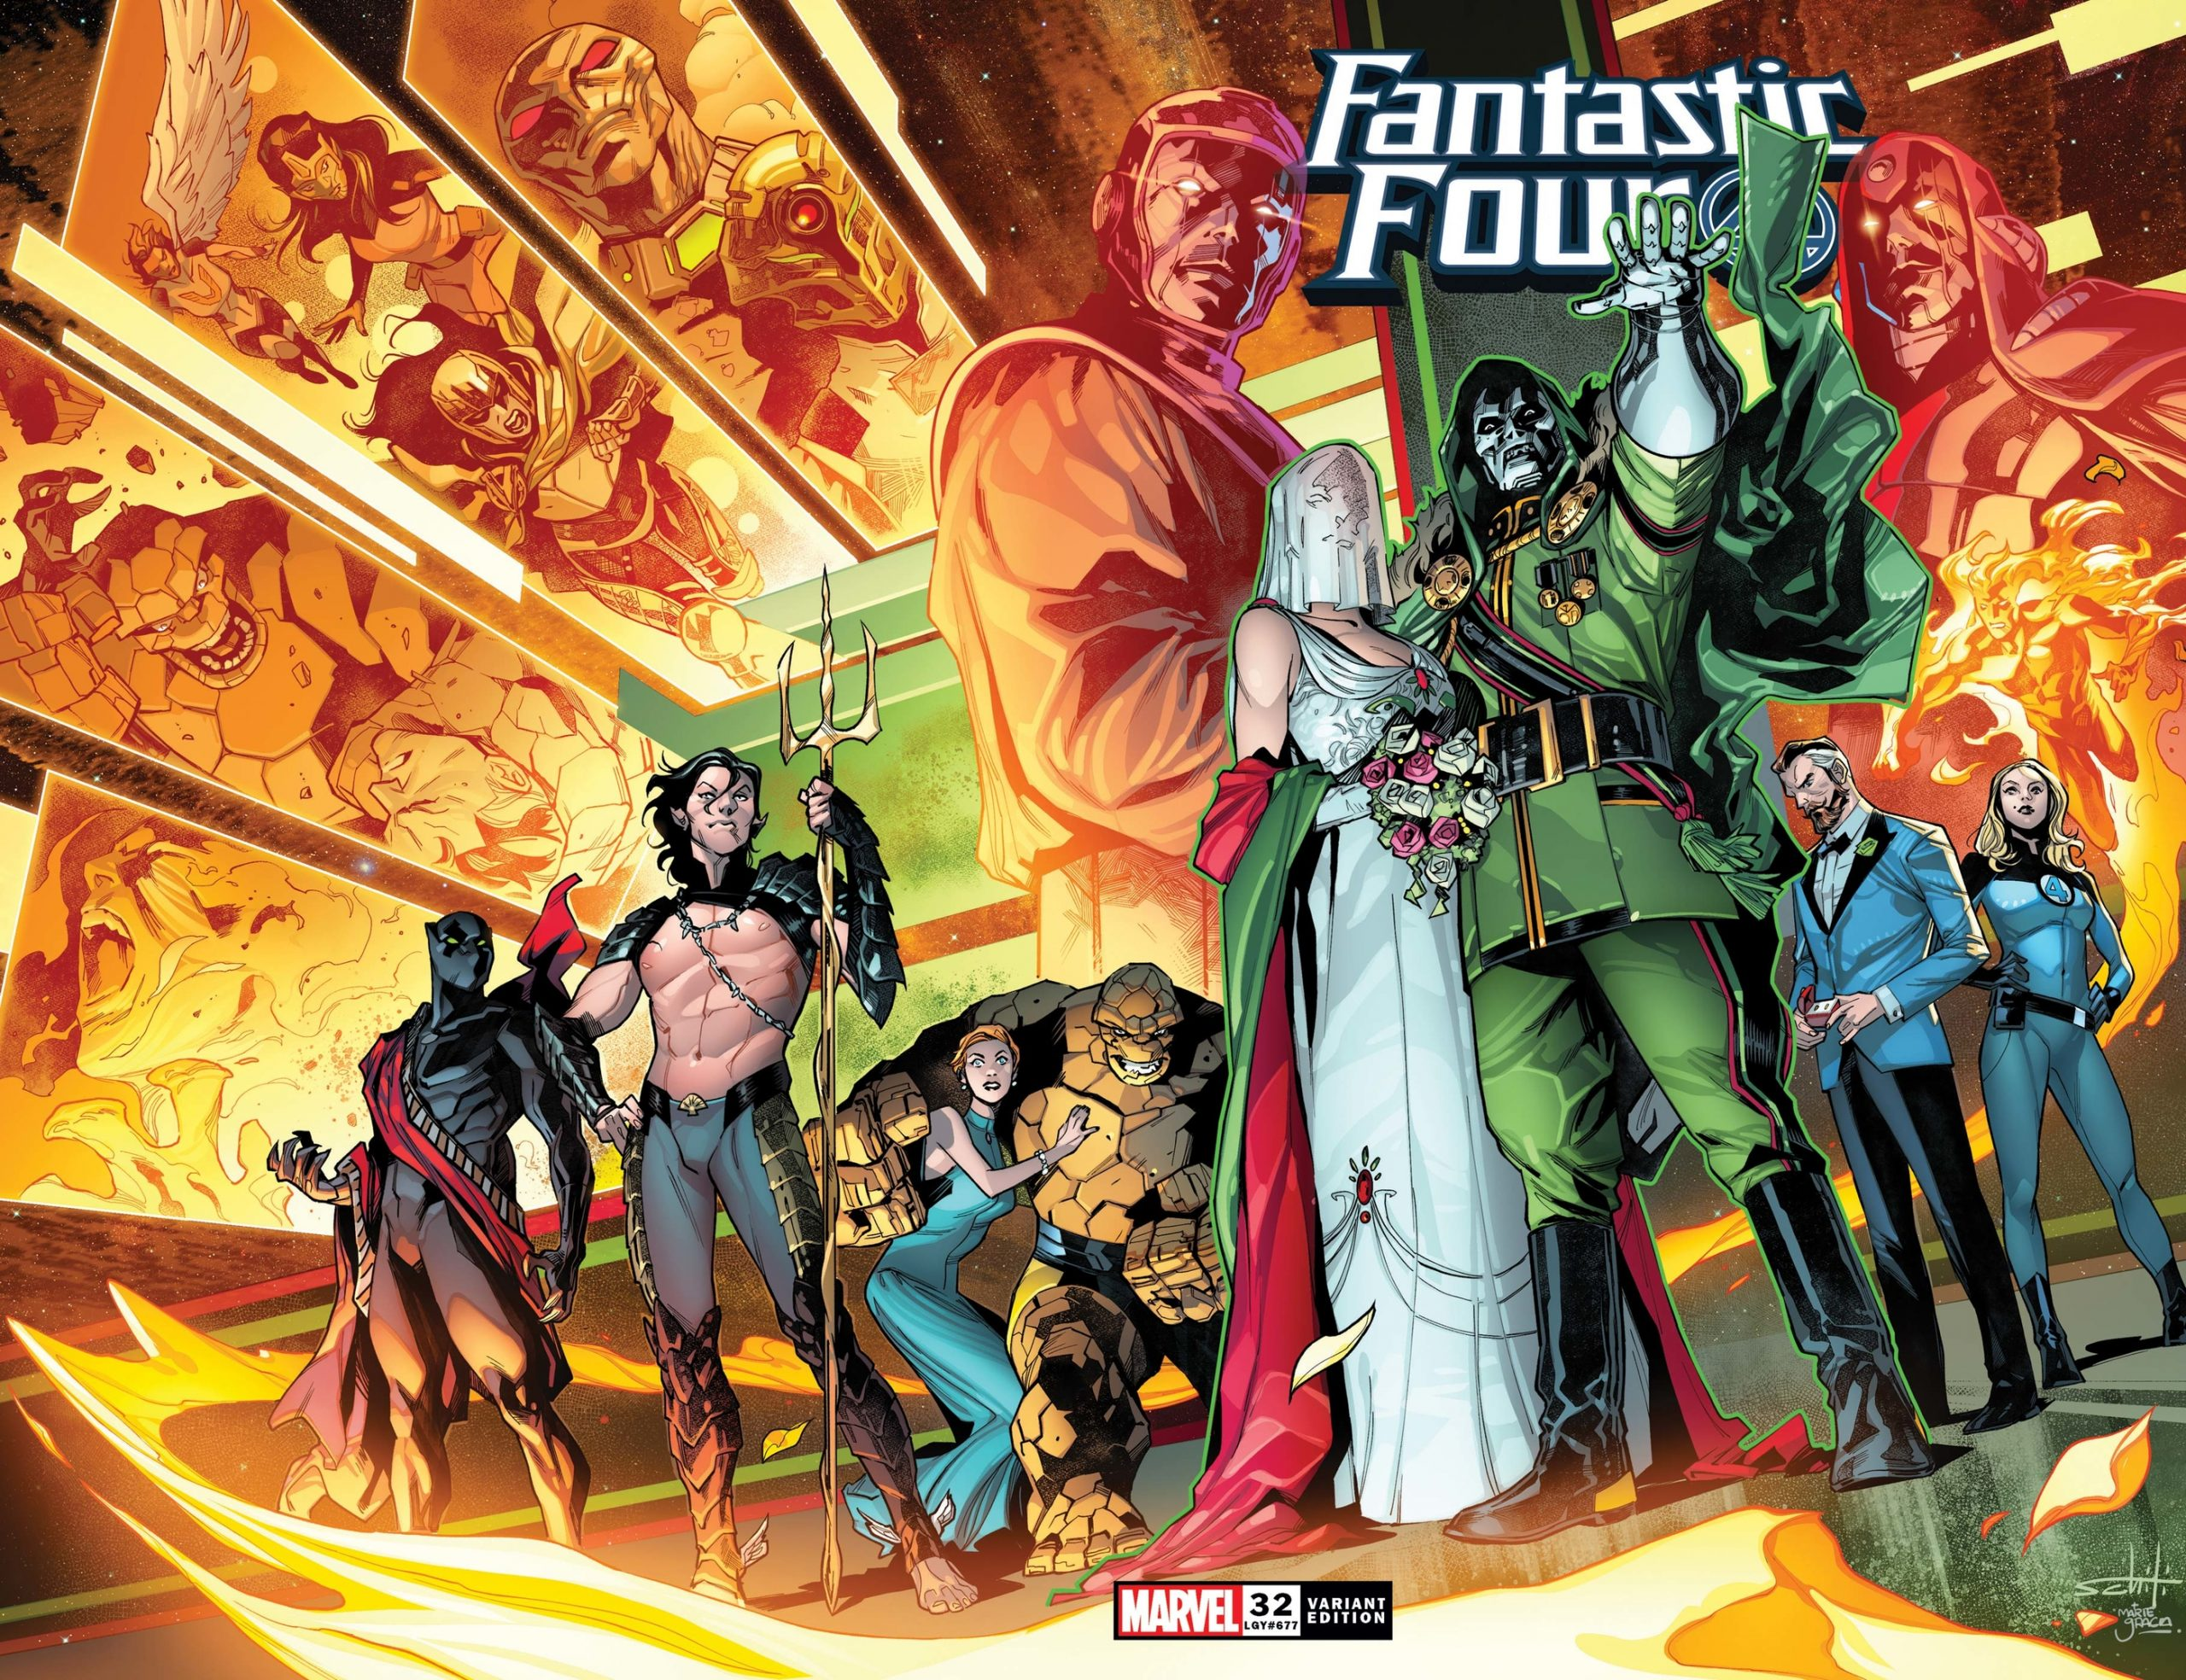 Fantastic-Four-32-spoilers-0-6-scaled-1 Fantastic-Four-32-spoilers-0-6-scaled-1